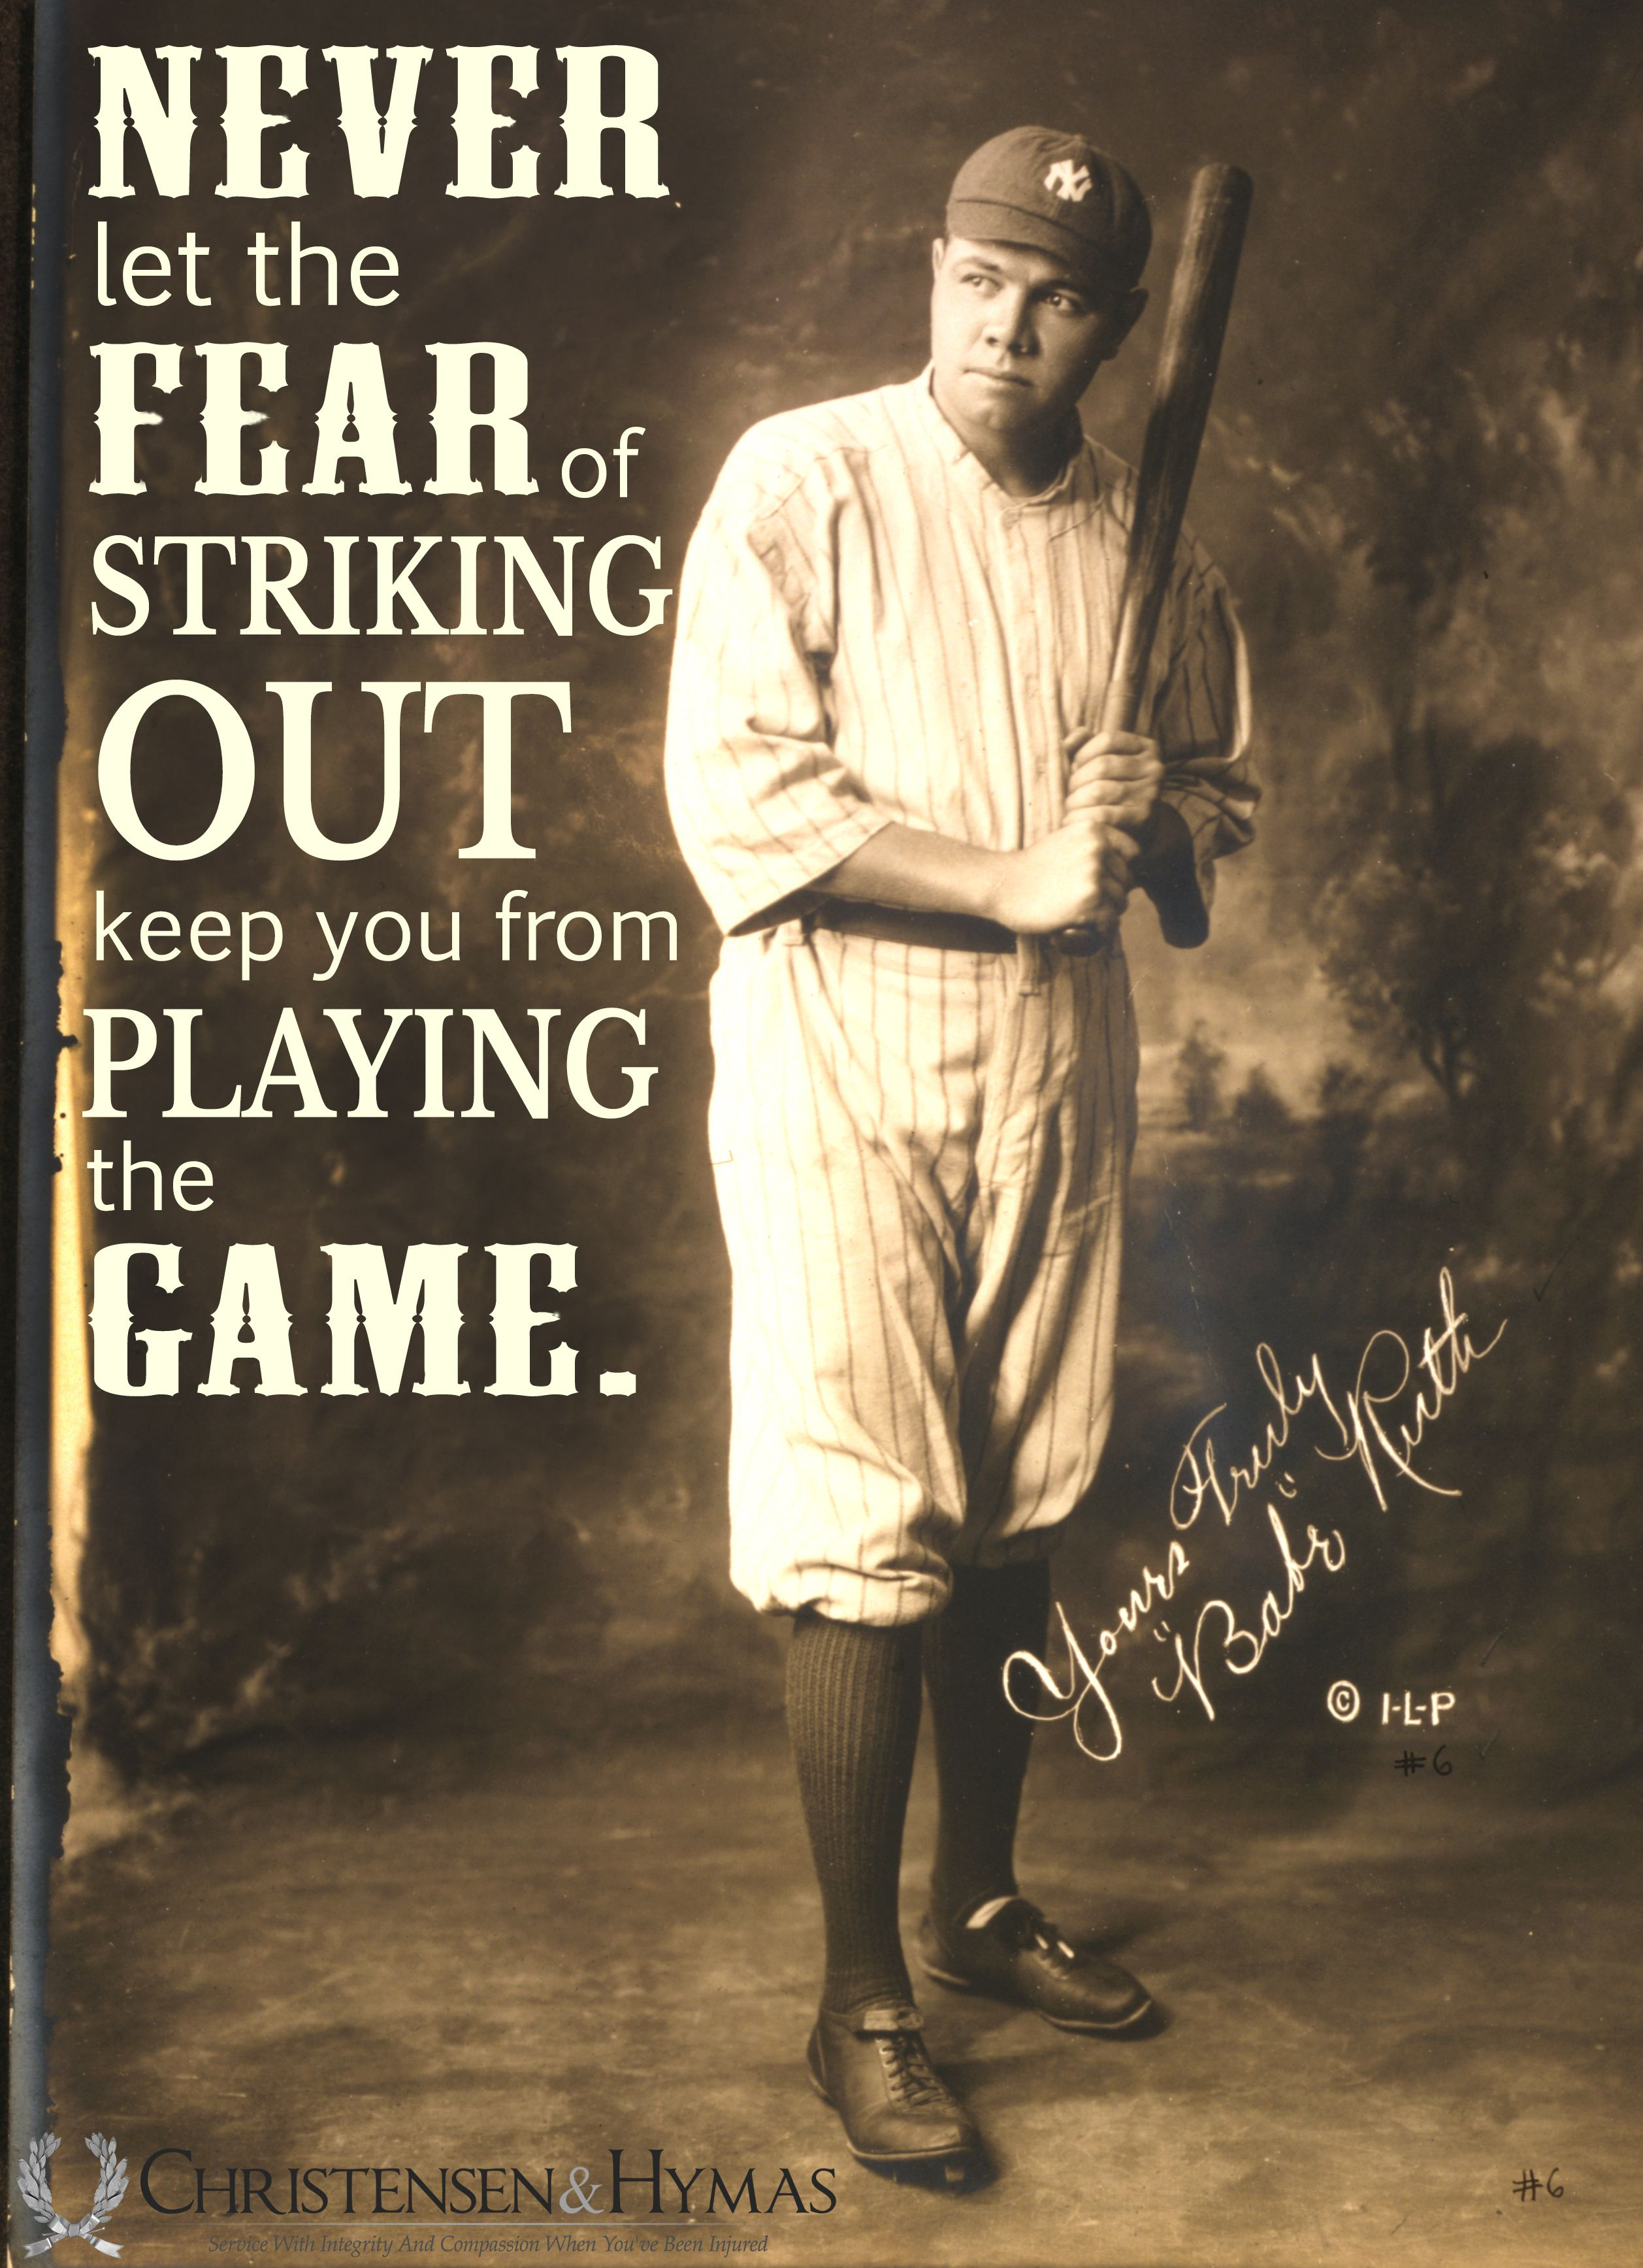 Though Babe Ruth hit 714 home runs, he also struck out 1,330 times in his baseball career. Don't let failure and fear keep you from swinging big!